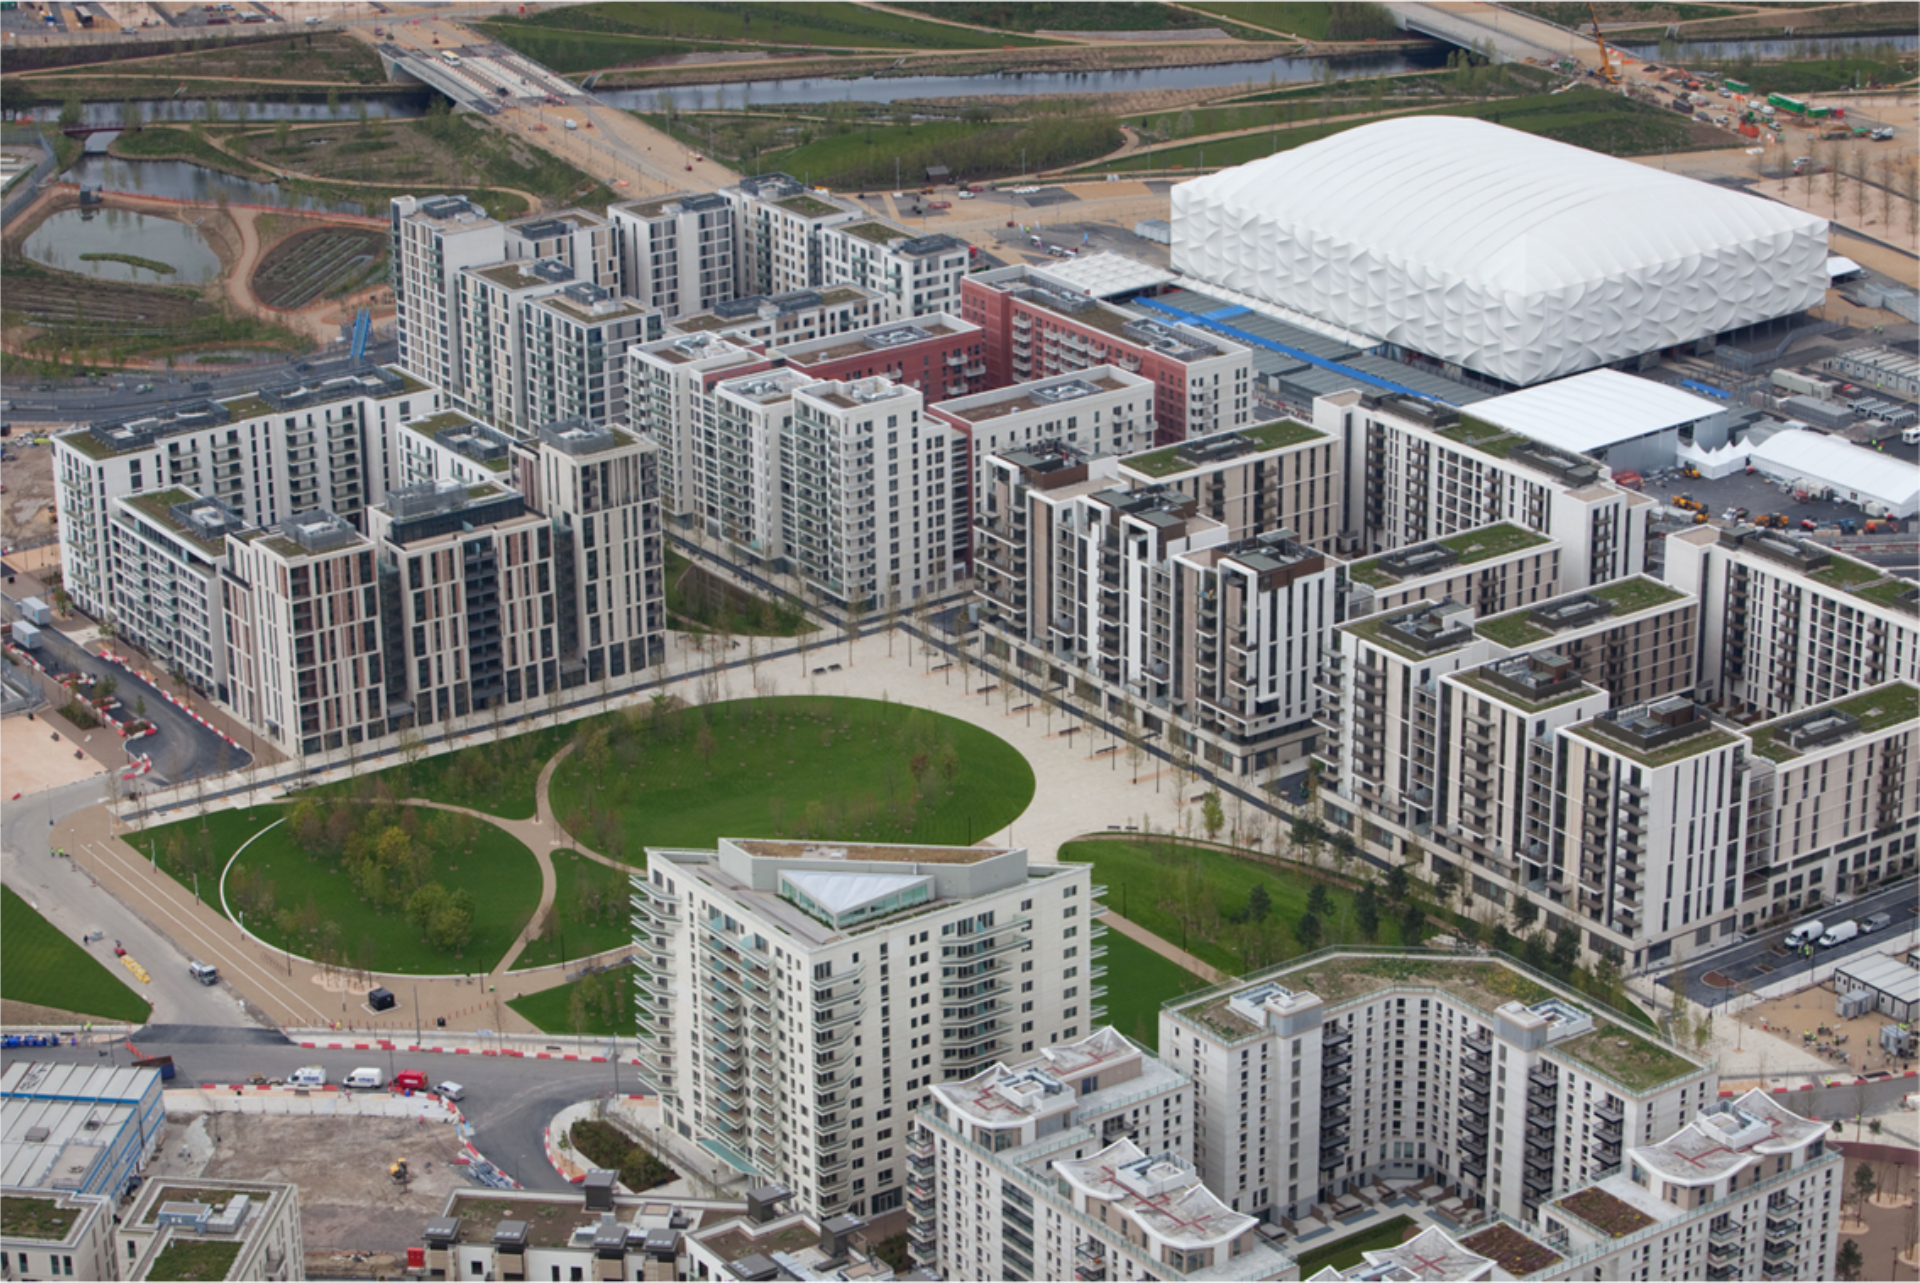 Olympic Park's Athlete's Village